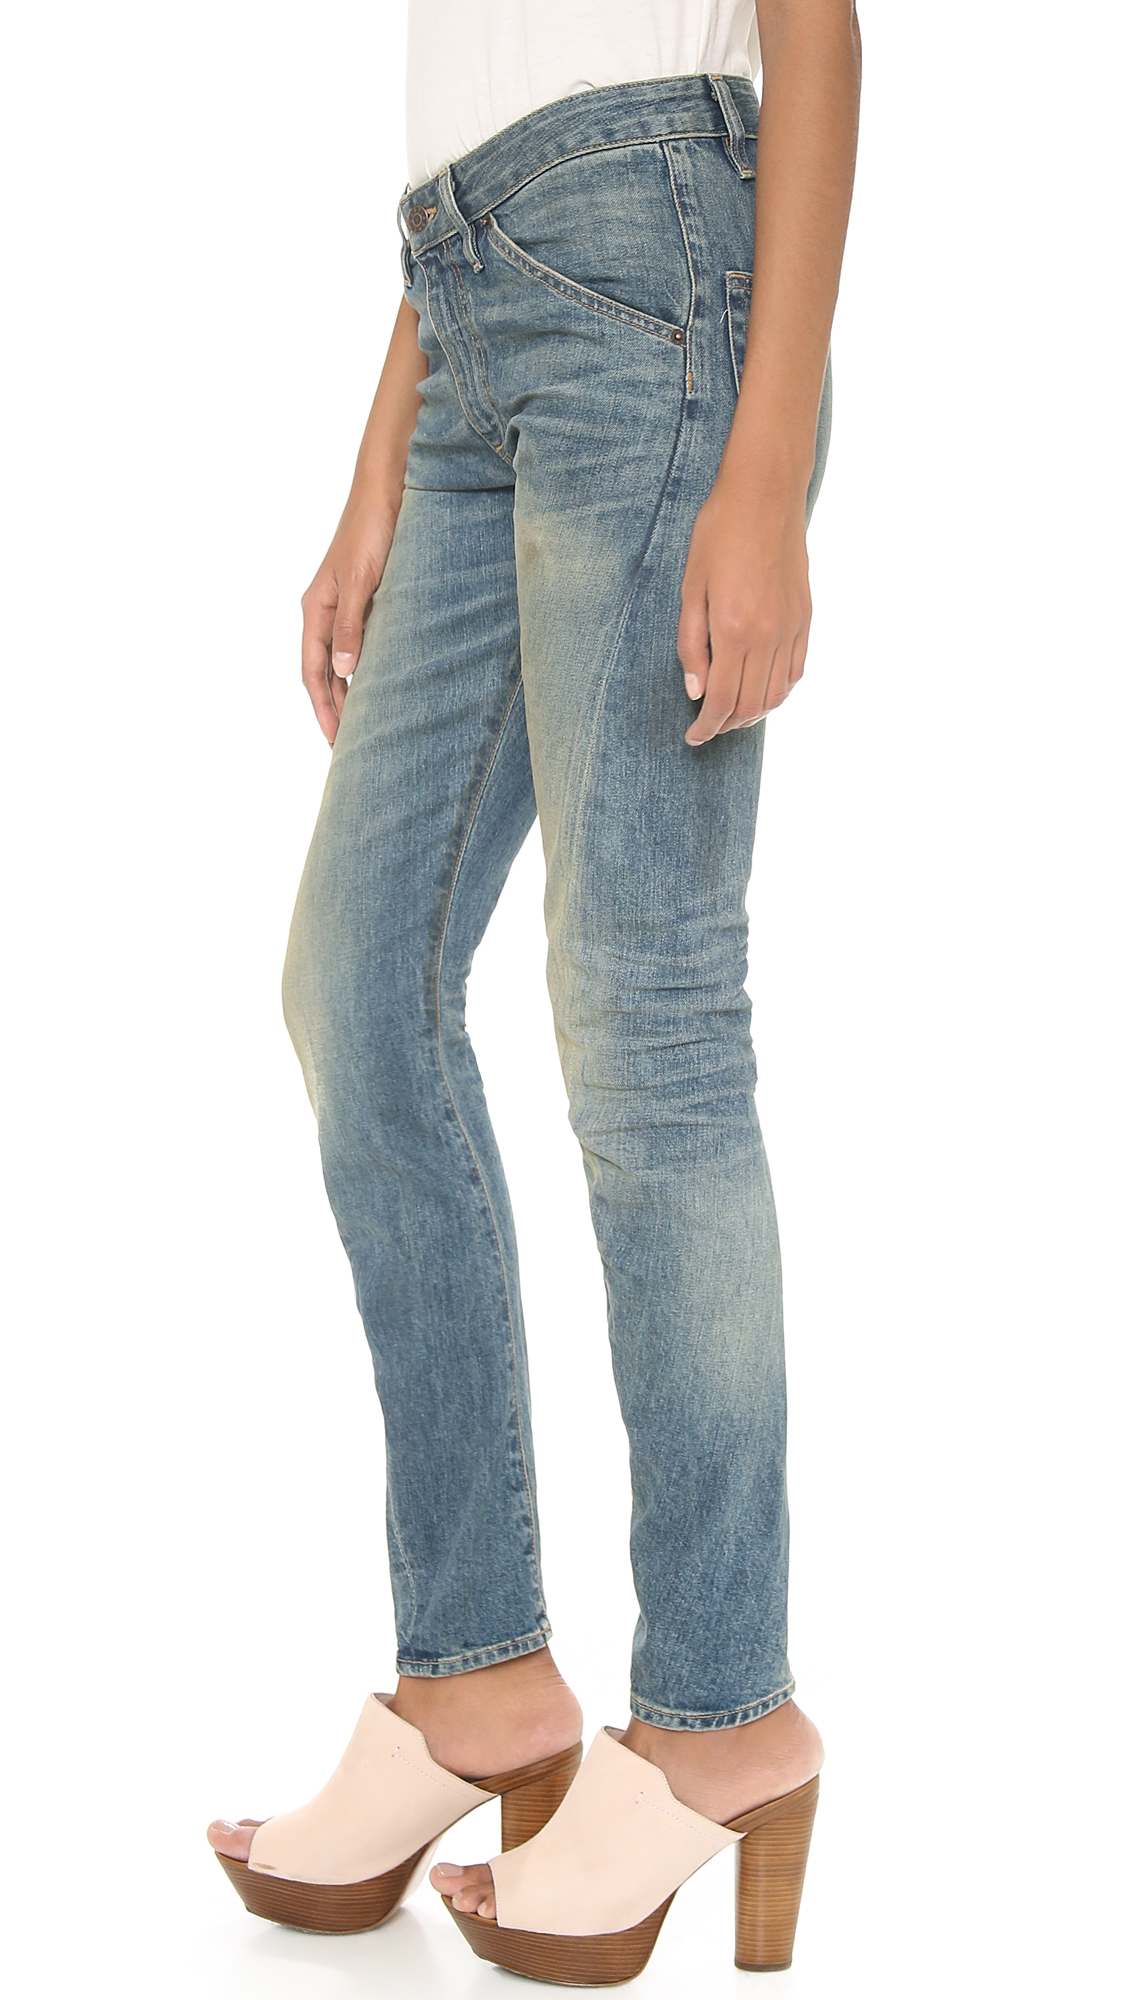 6397 Twisted Seam Jeans in Dirty Faded (Blue)